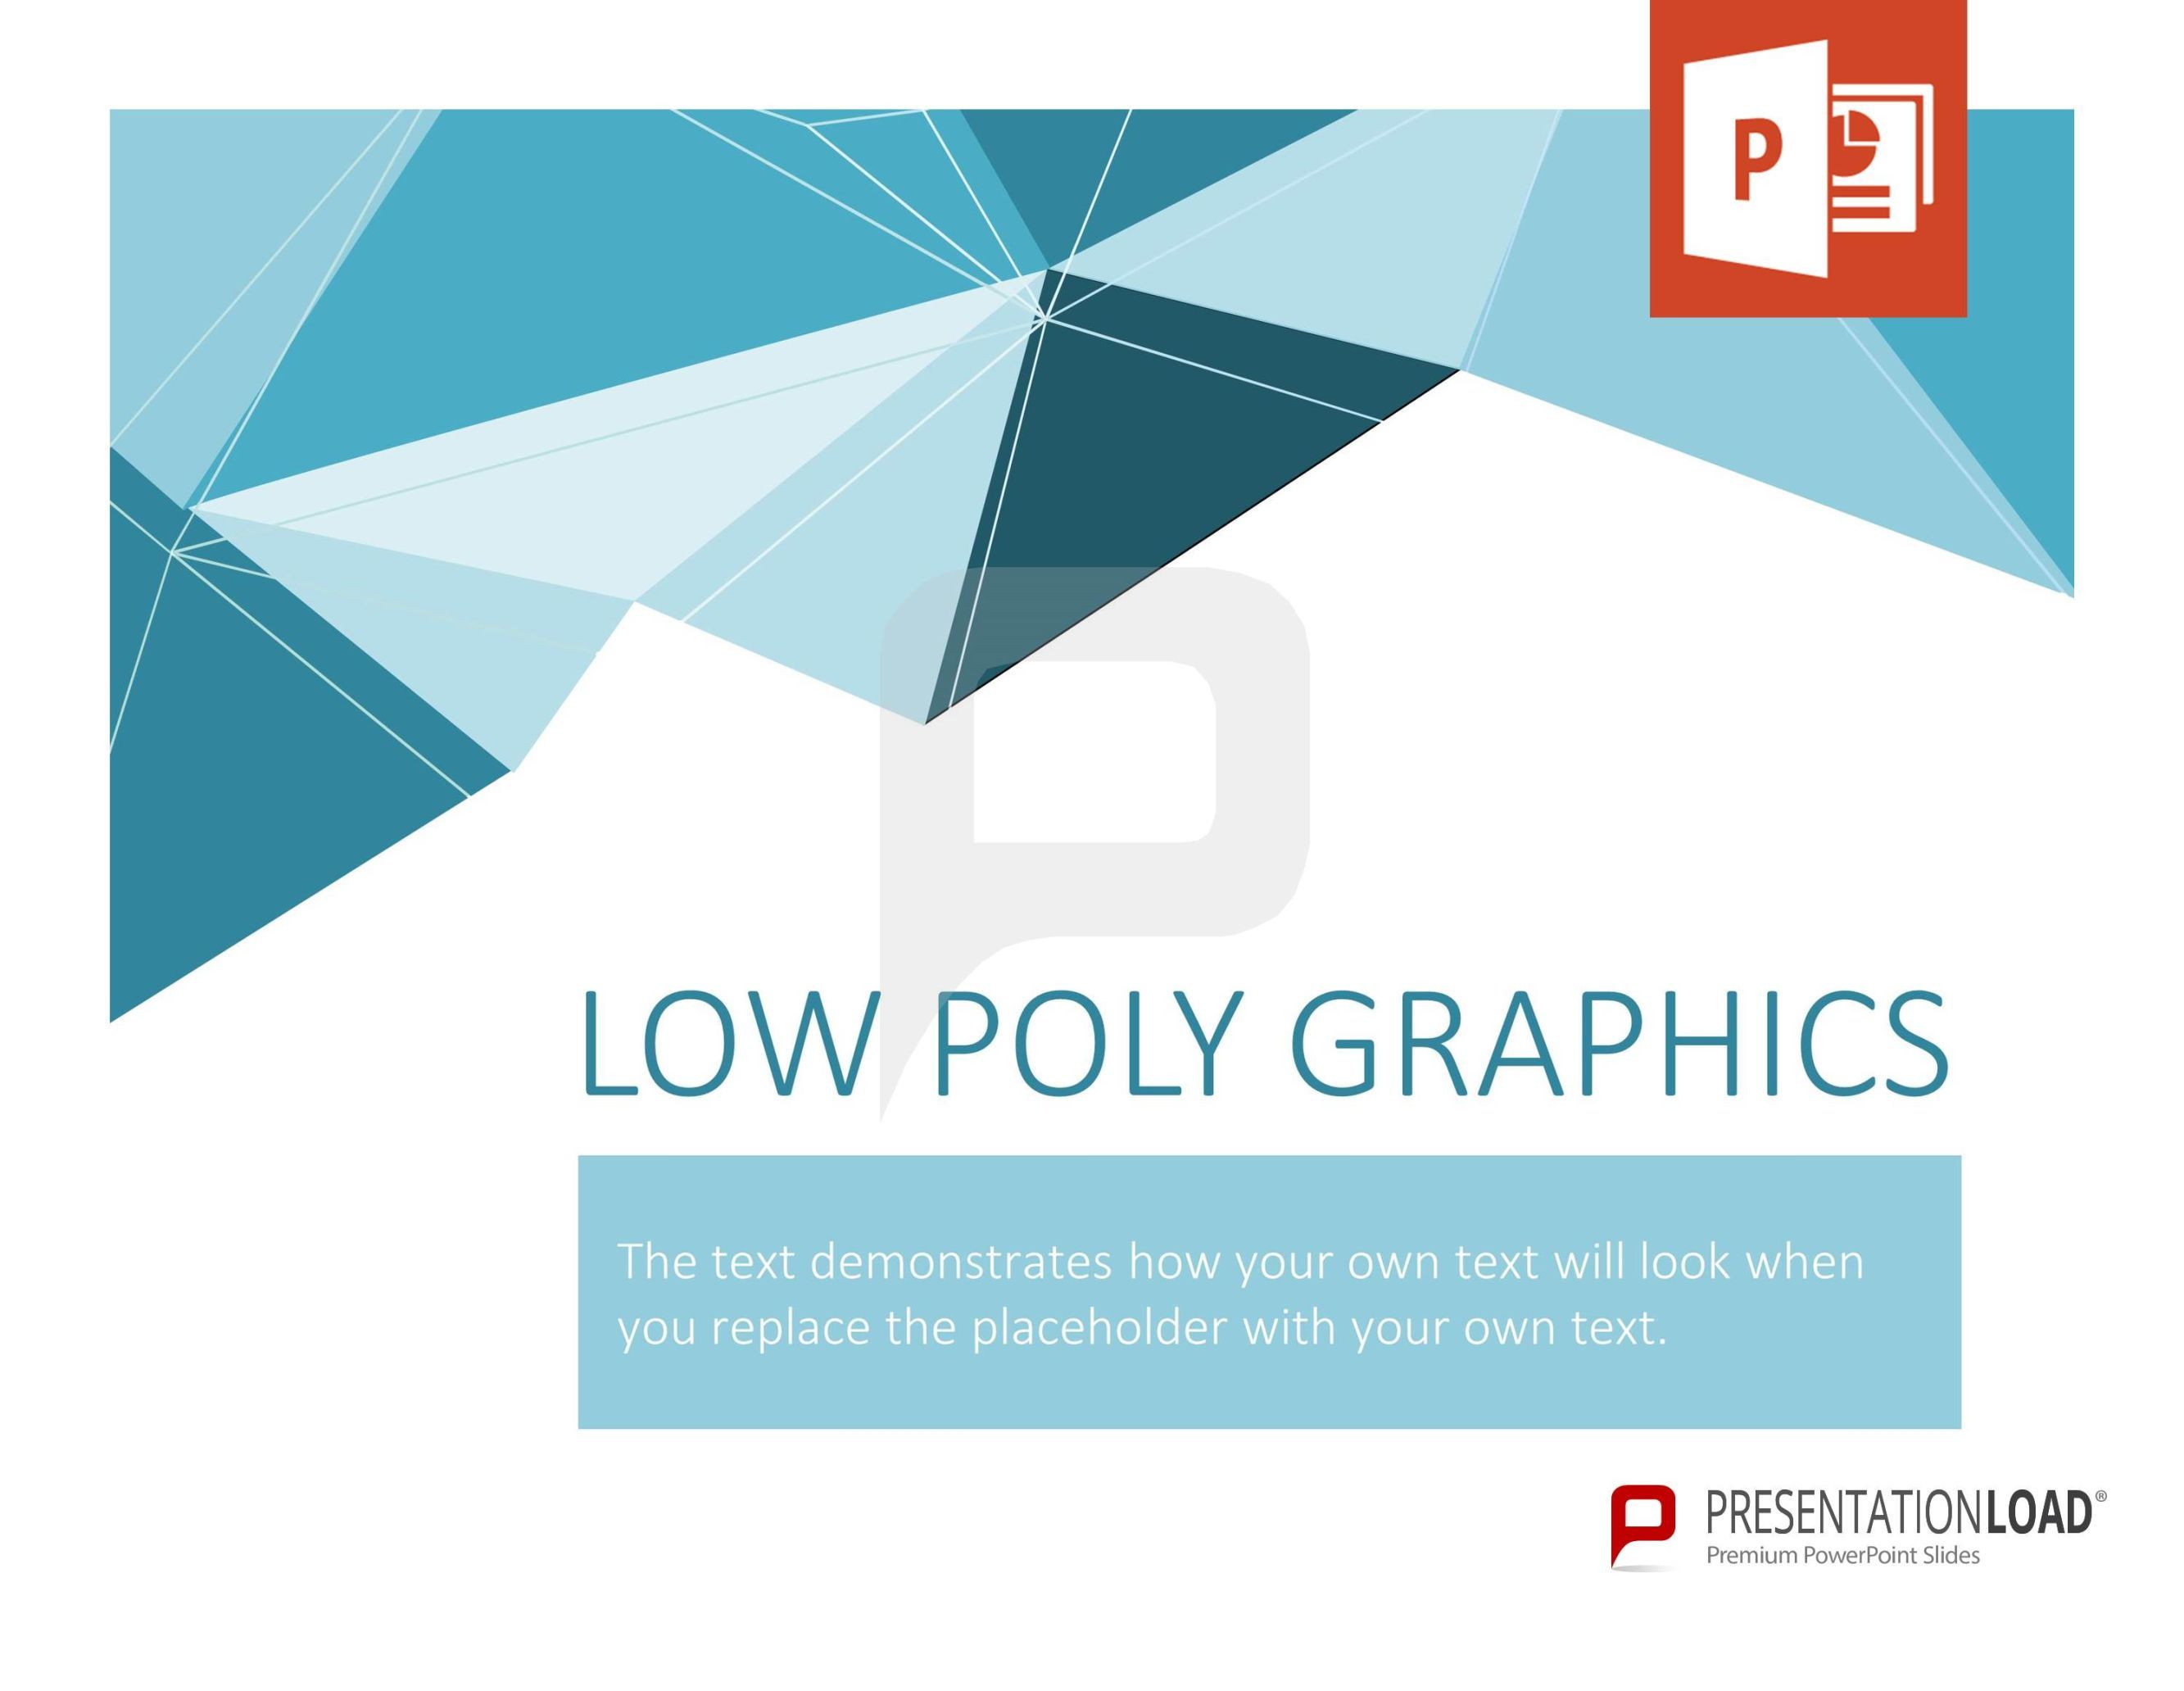 Follow new design trends and work with LowPoly Graphics